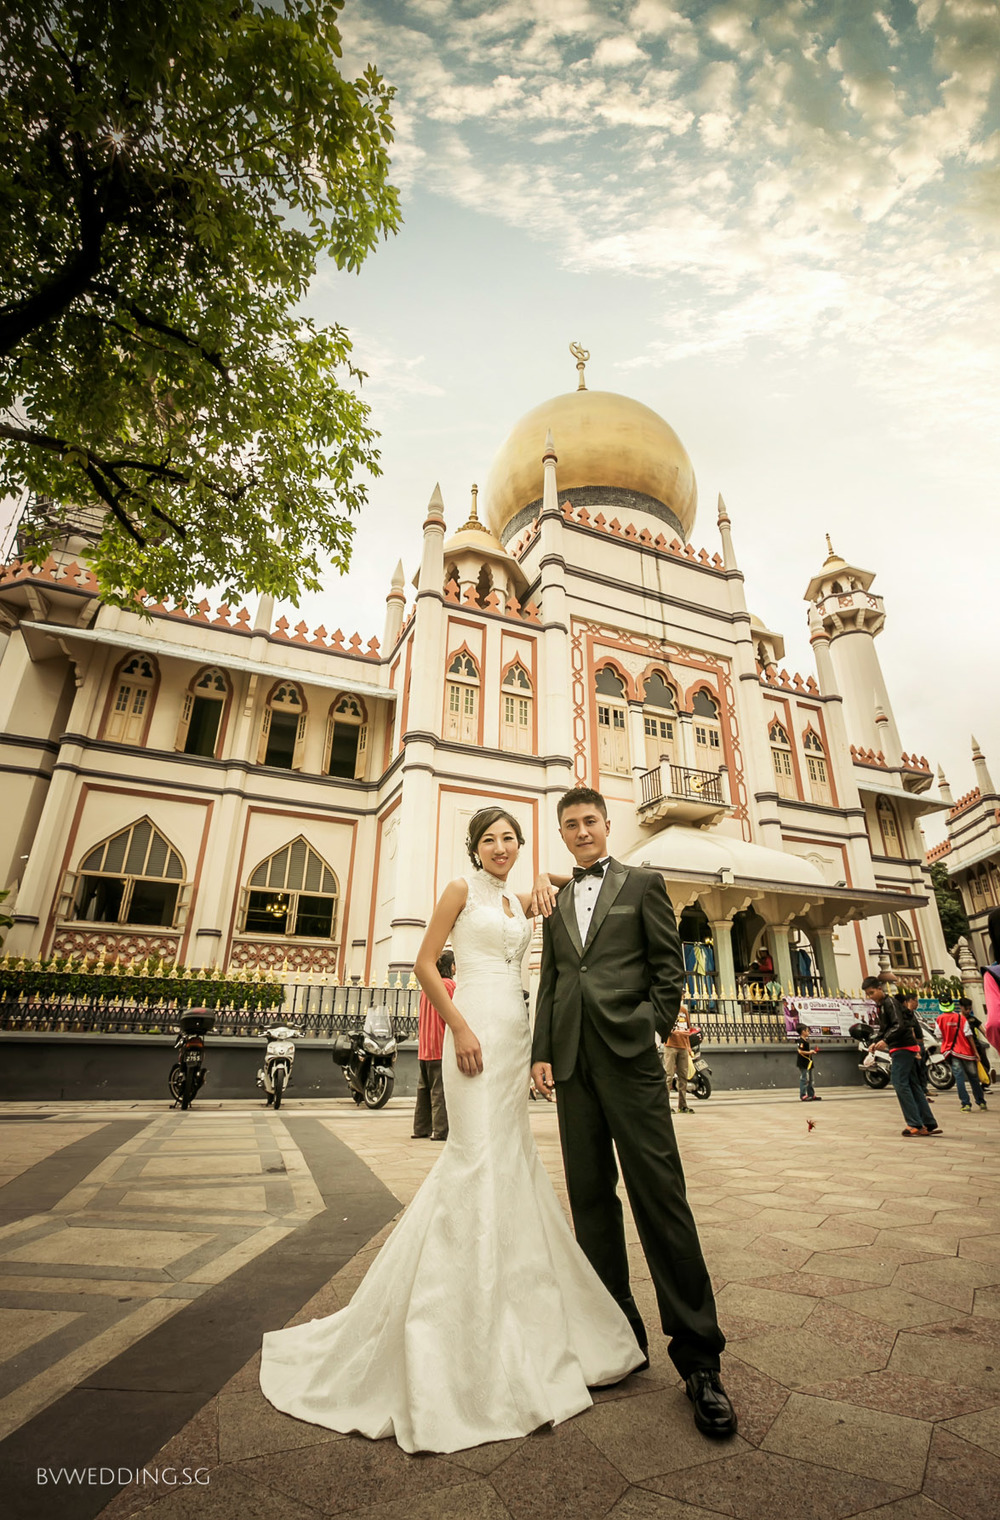 Pre-wedding photoshoot at Sultan Mosque